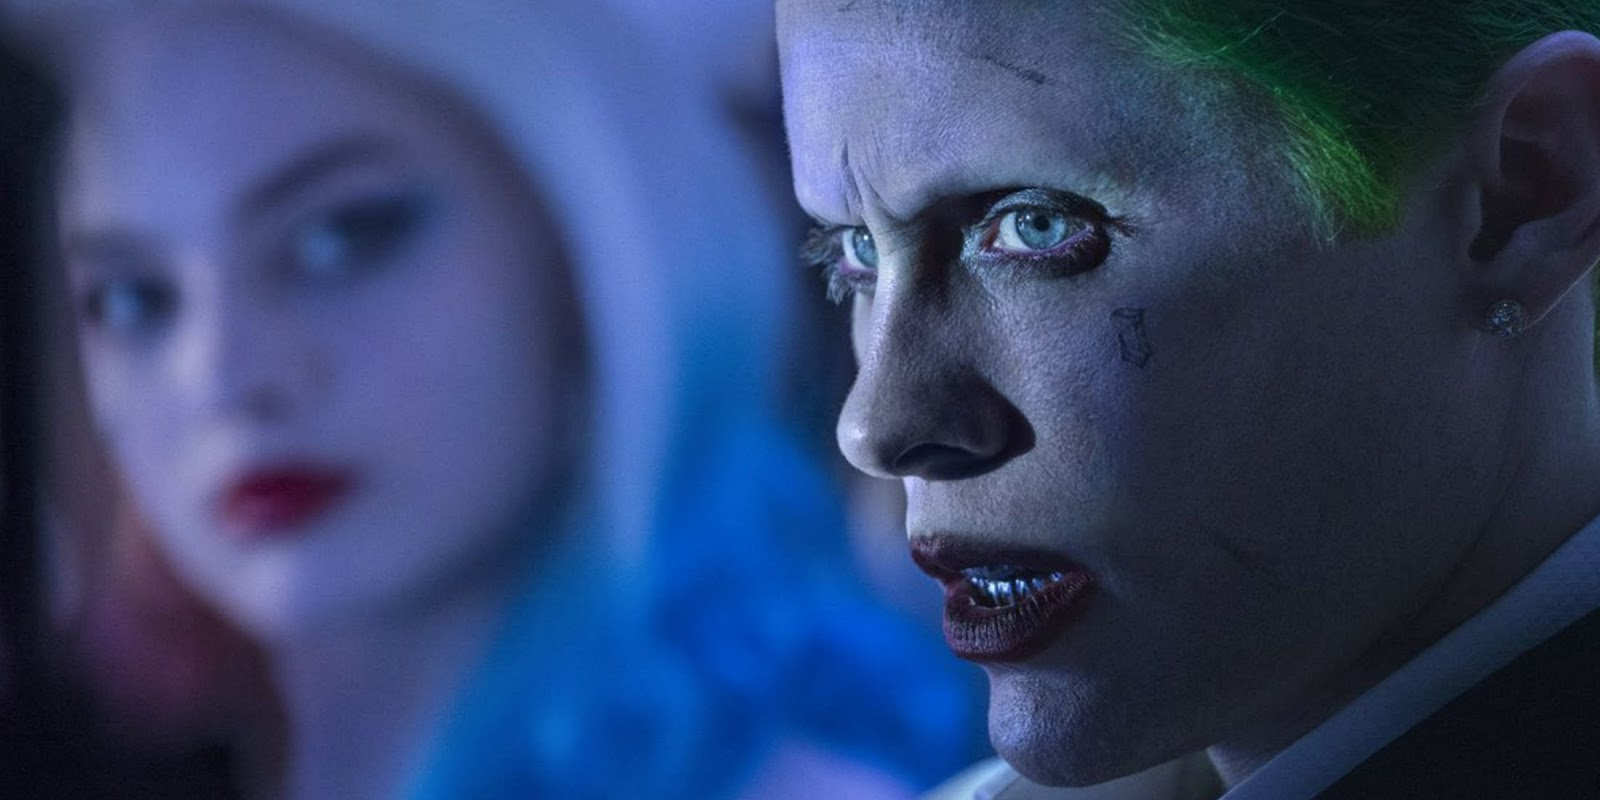 Jared Leto Speaks Harley Quinn Spinoff Appearance,And Praise Wonder Woman.